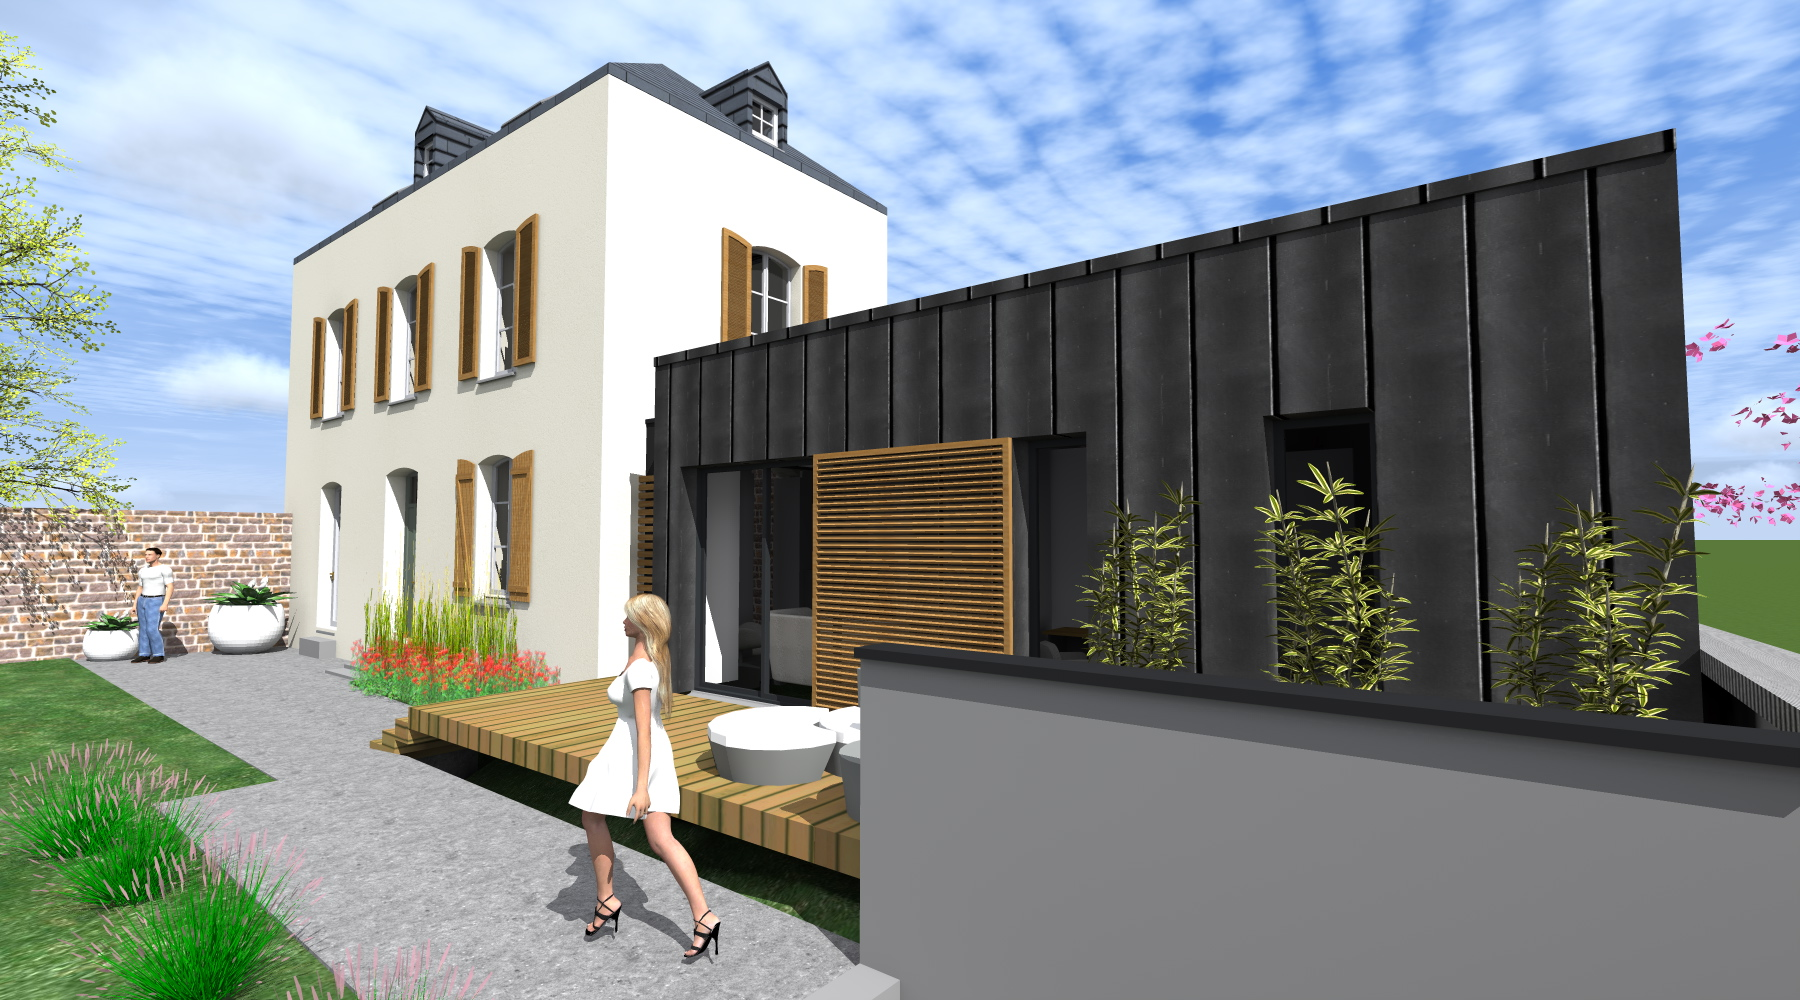 Projet l l 1 2 vue architecte lise roturier rennes for Architecte batiment de france